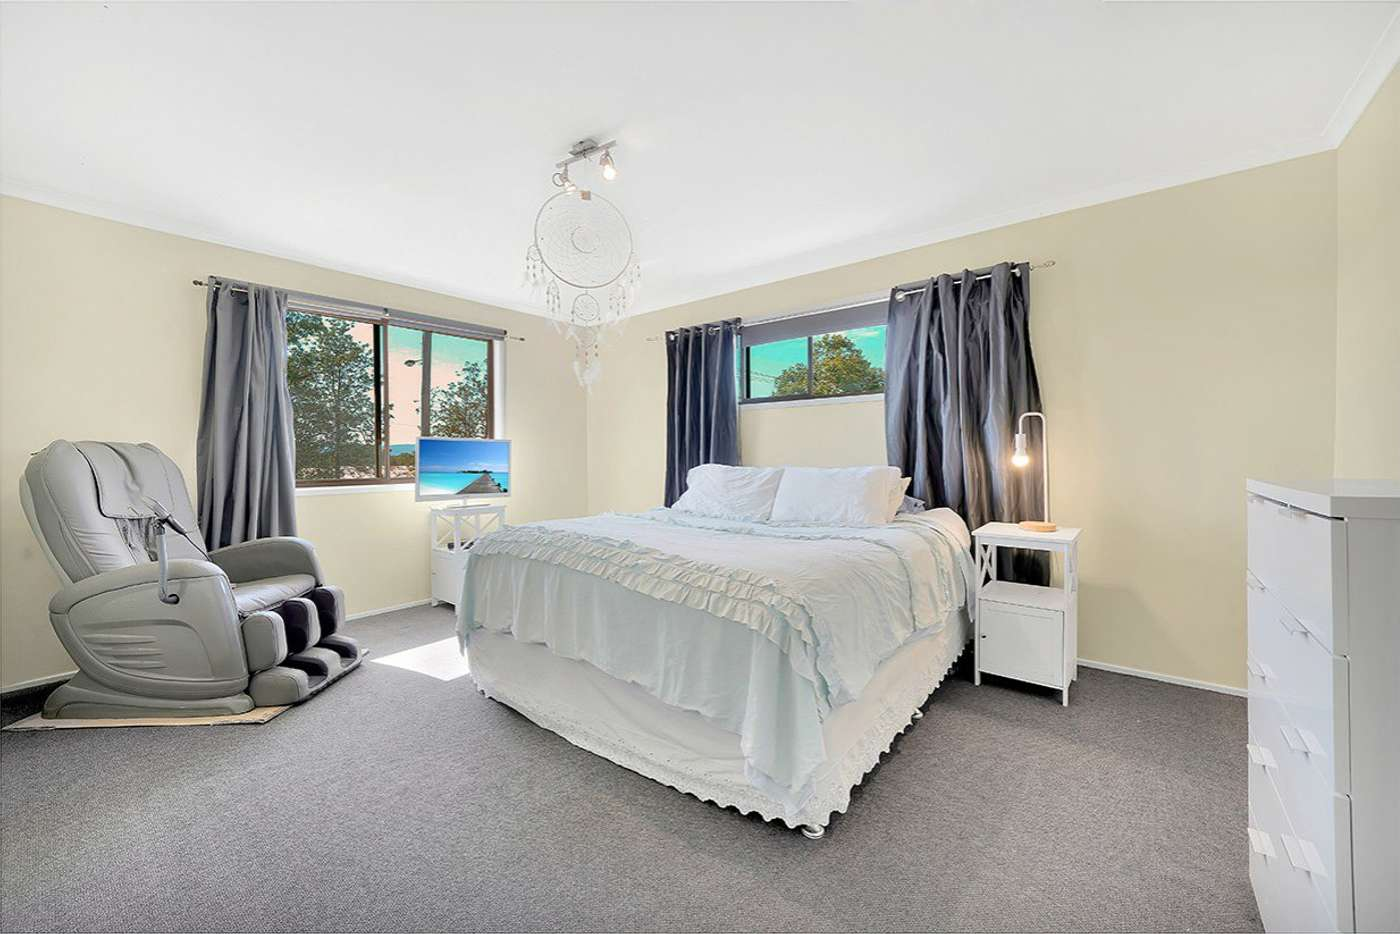 Seventh view of Homely house listing, 5-7 Ivory Creek Road, Toogoolawah QLD 4313